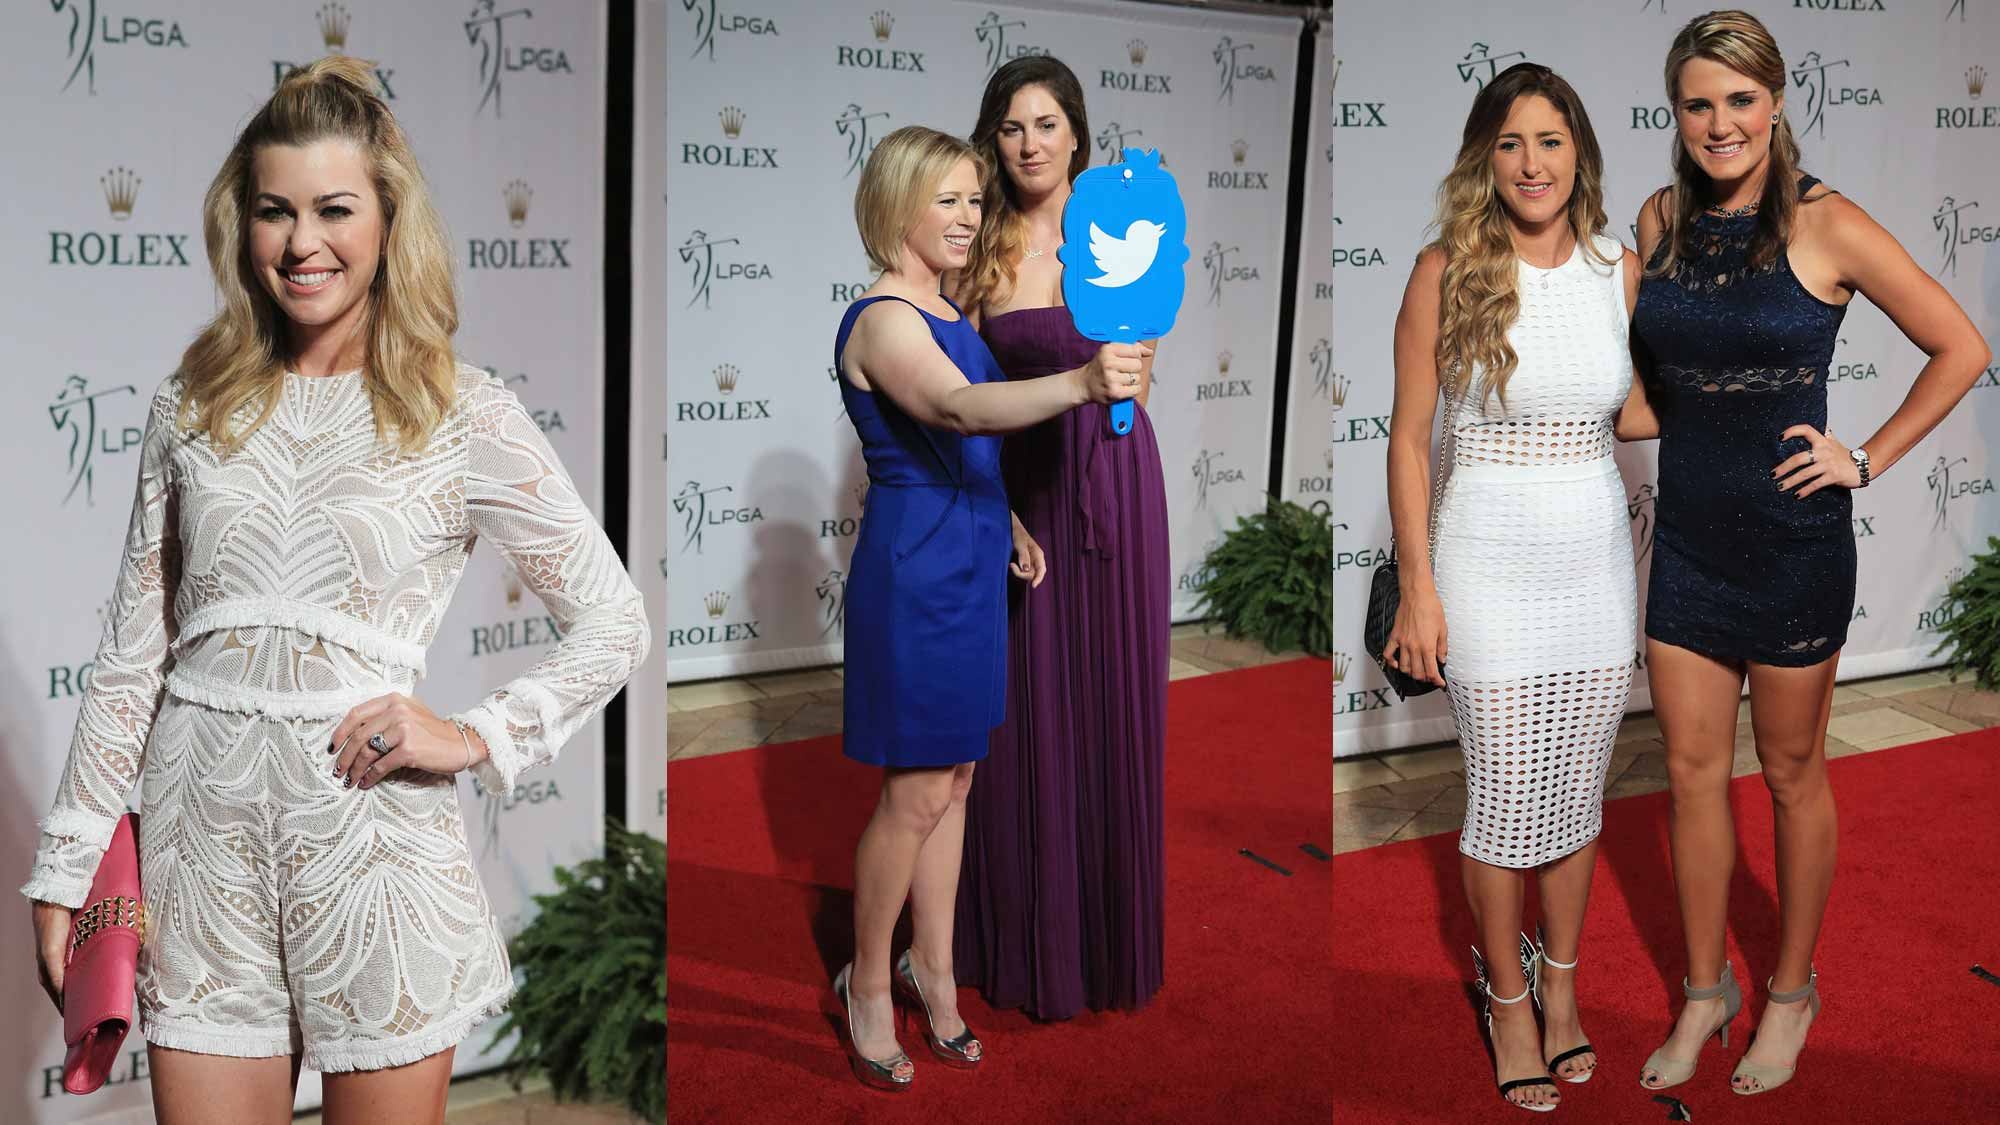 Left to Right: Paula Creamer, Morgan Pressel, Sandra Gal, Jaye Marie Green, and Lexi Thompson pose on the red carpet before the LPGA Rolex Players Awards at the Ritz-Carlton, Naples